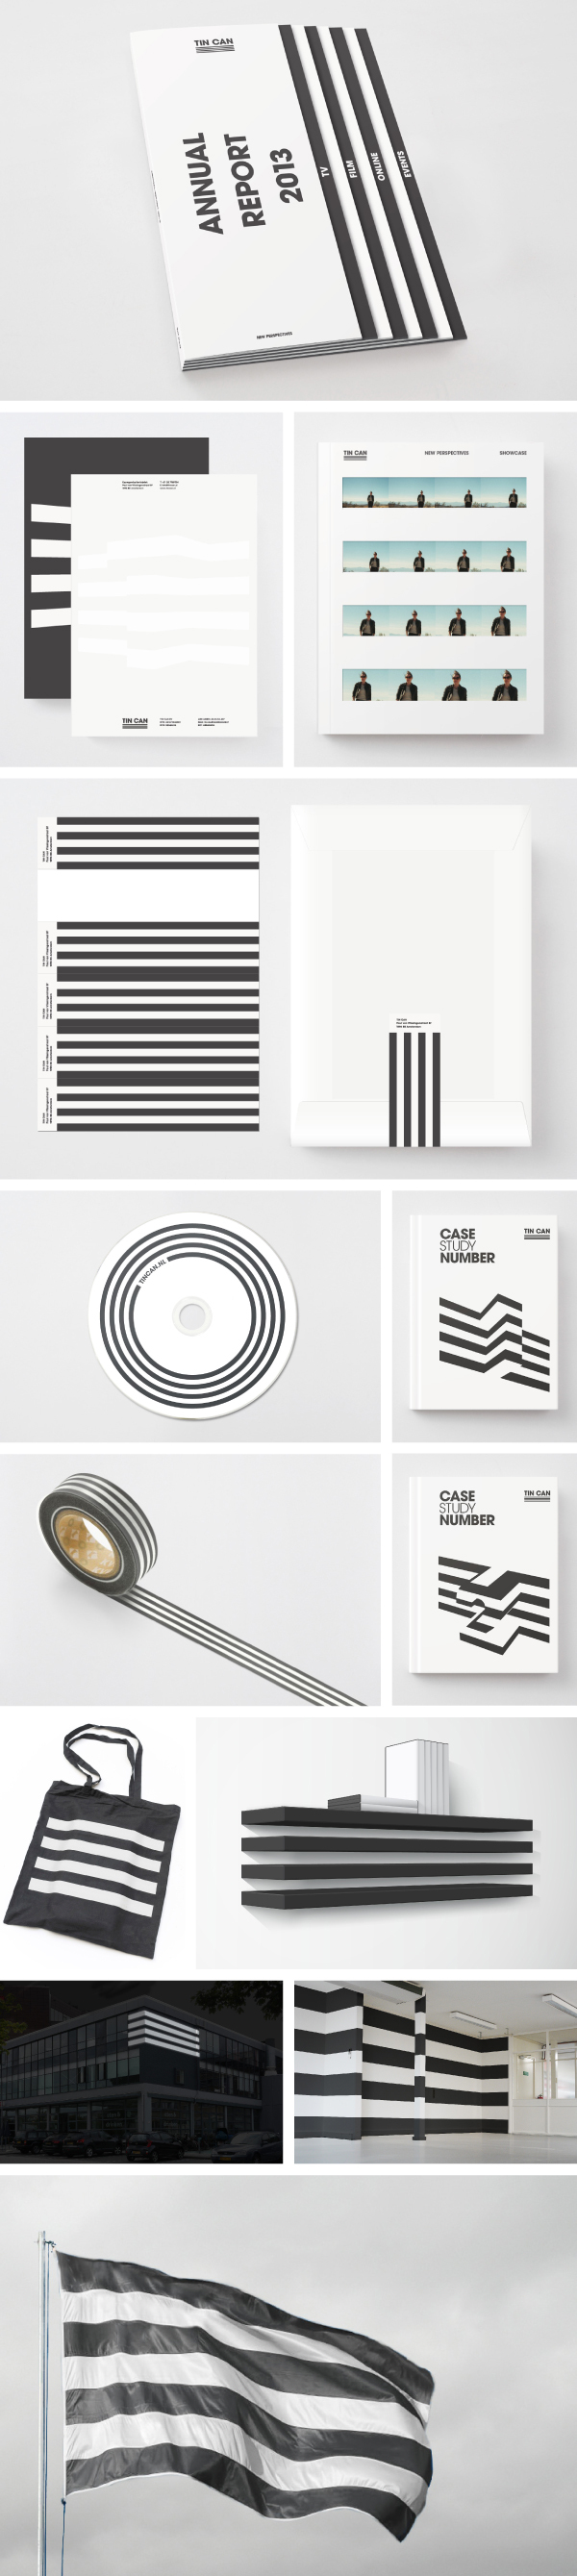 TIN CAN - visual identity